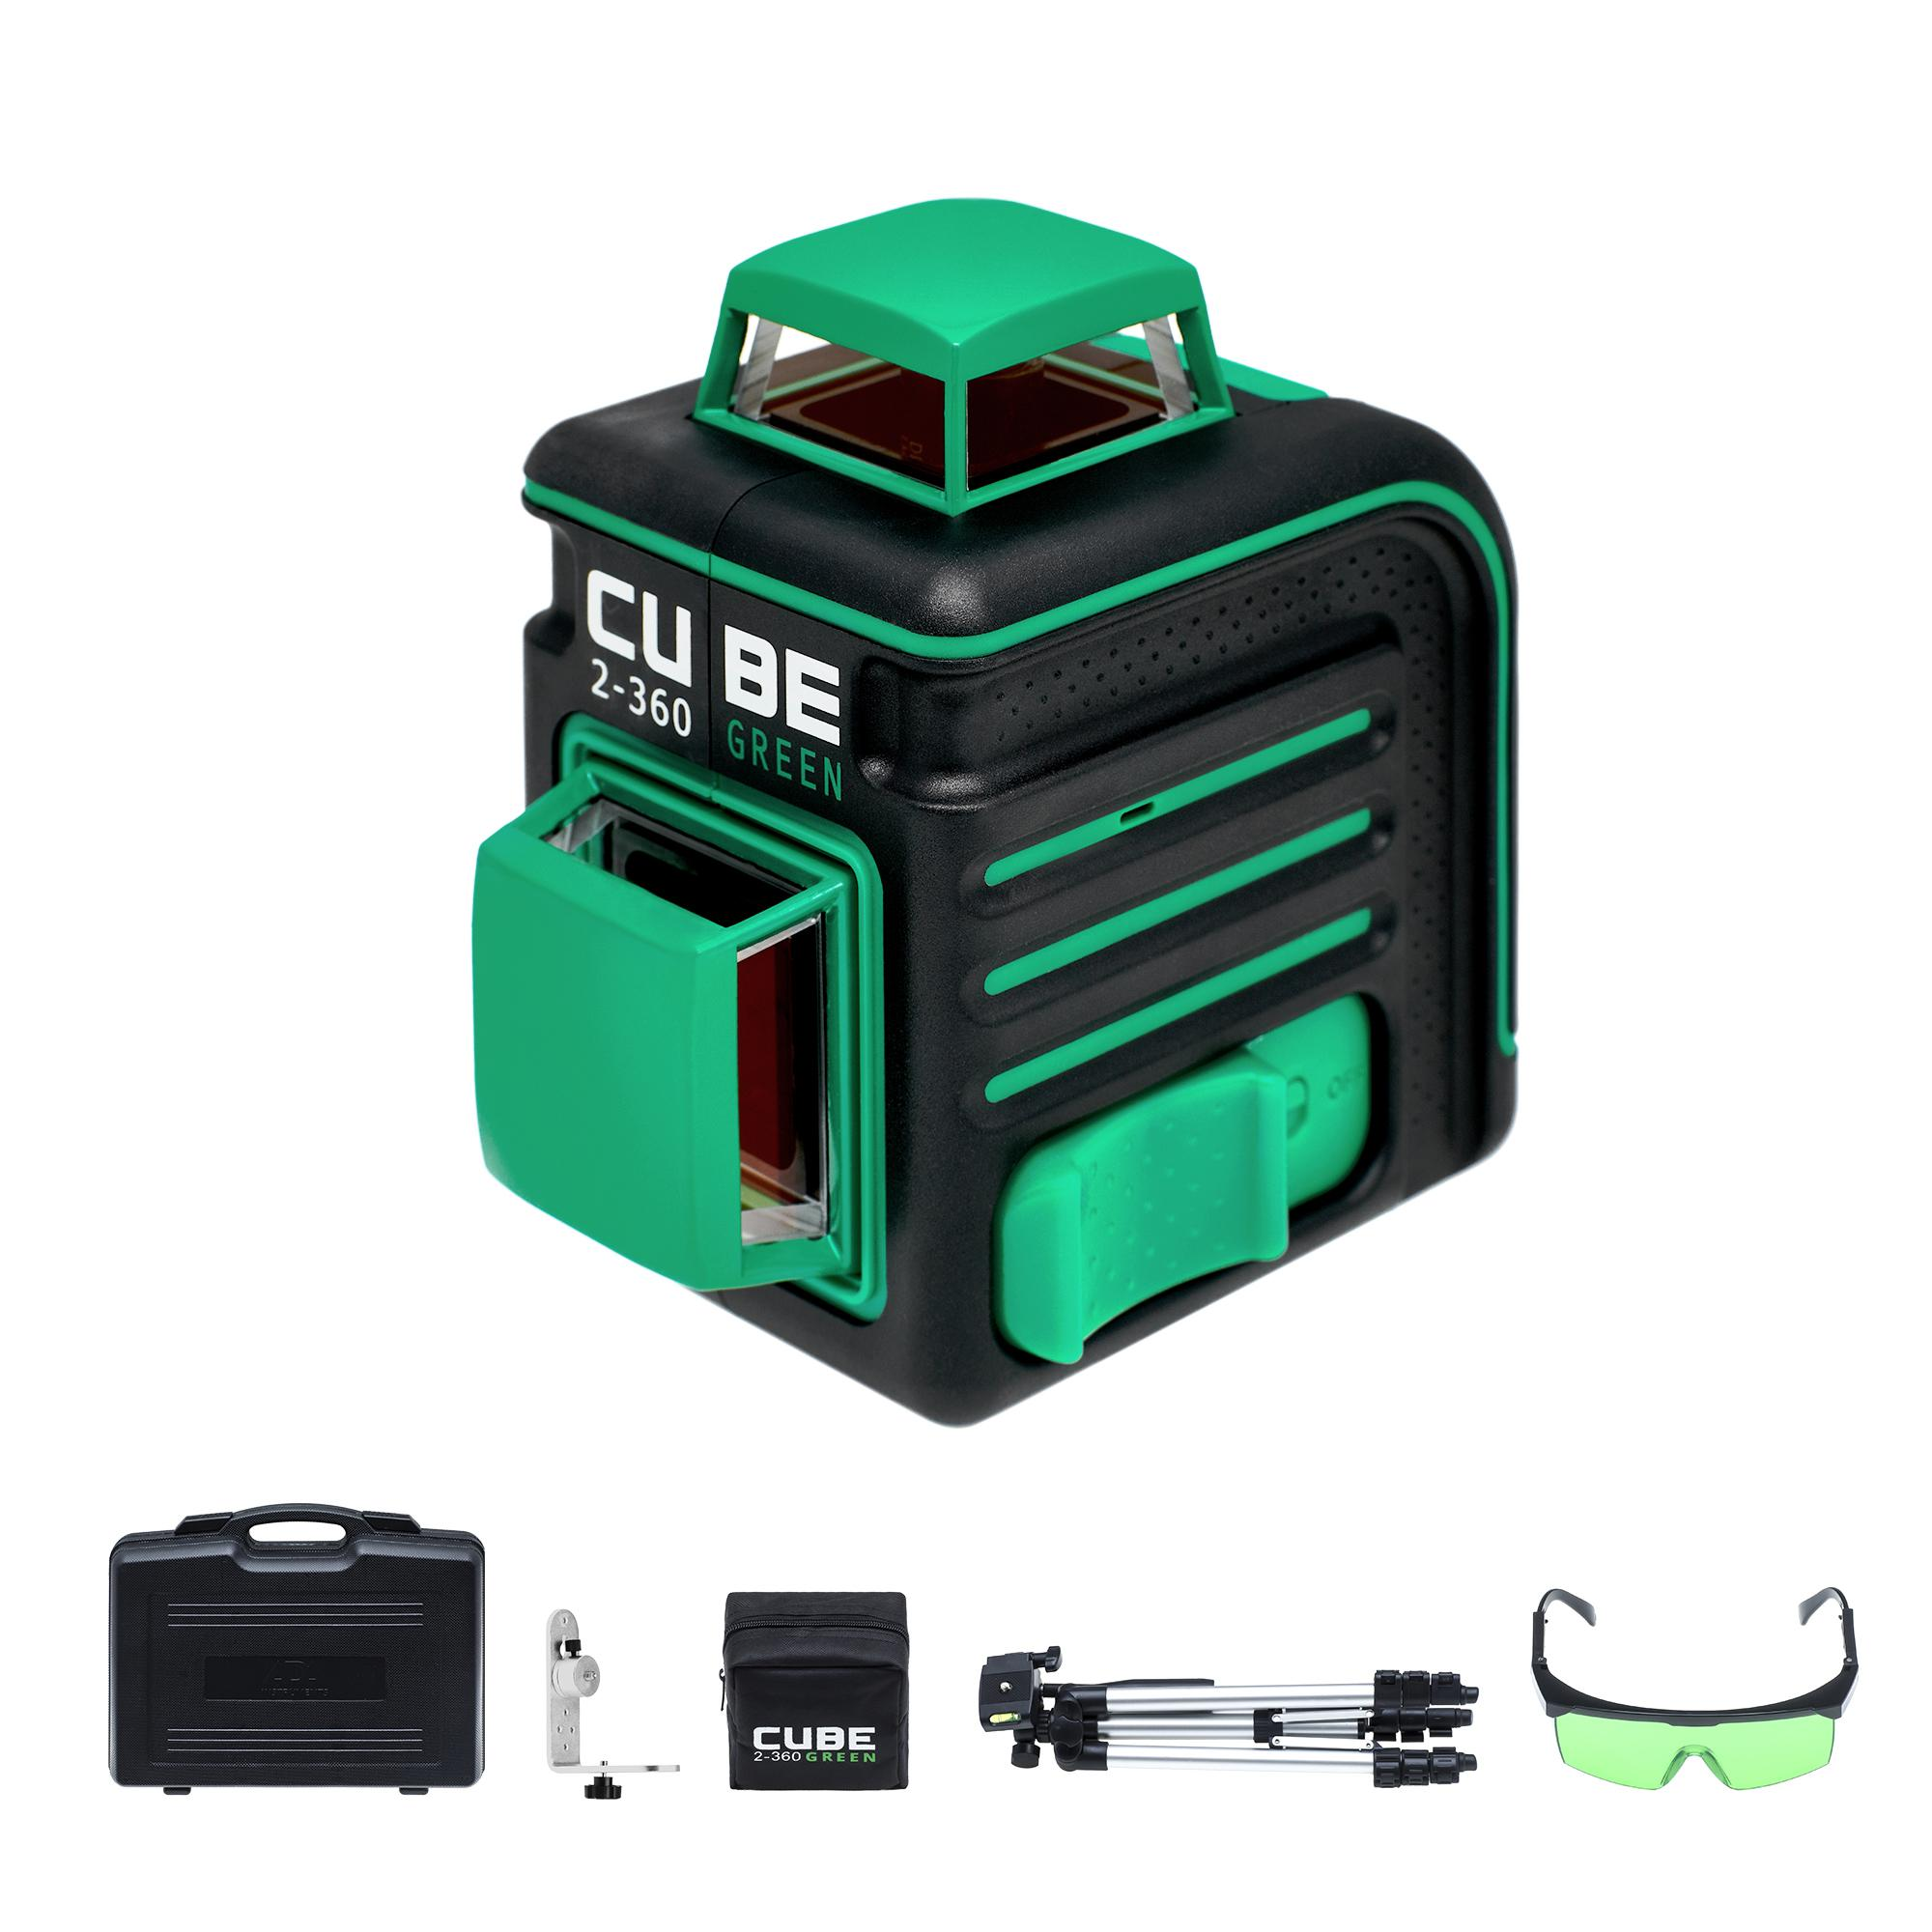 Уровень Ada Cube 2-360 green ultimate edition лазерный уровень ada cube 360 home edition